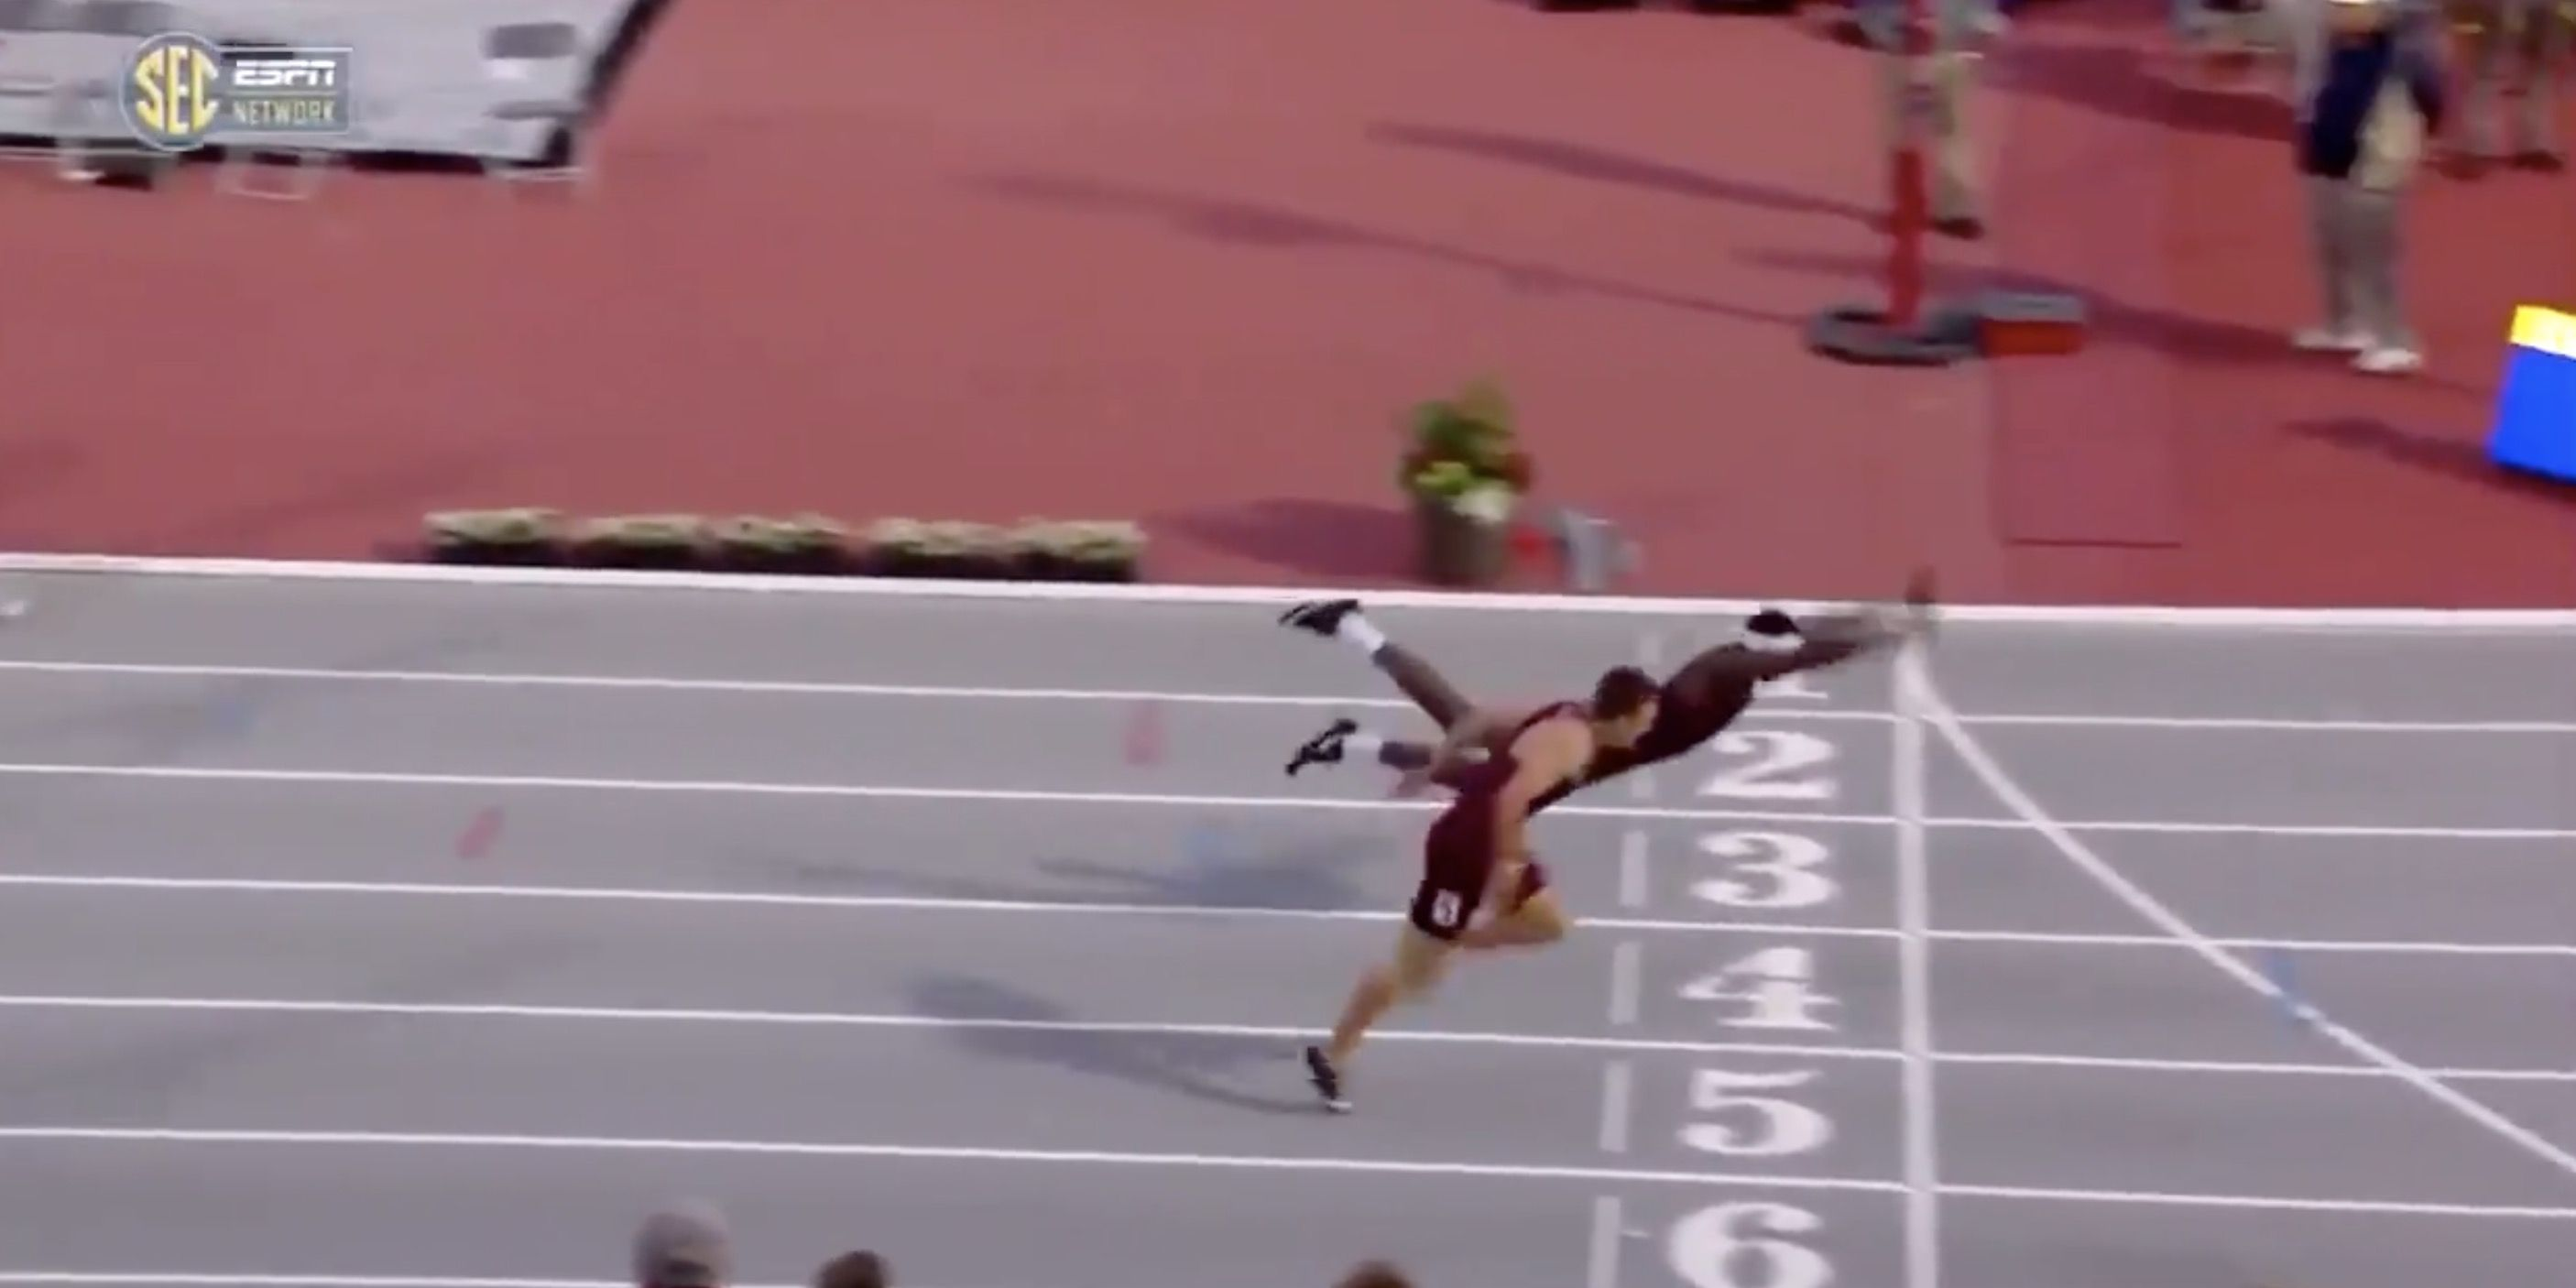 man jumps across finish line